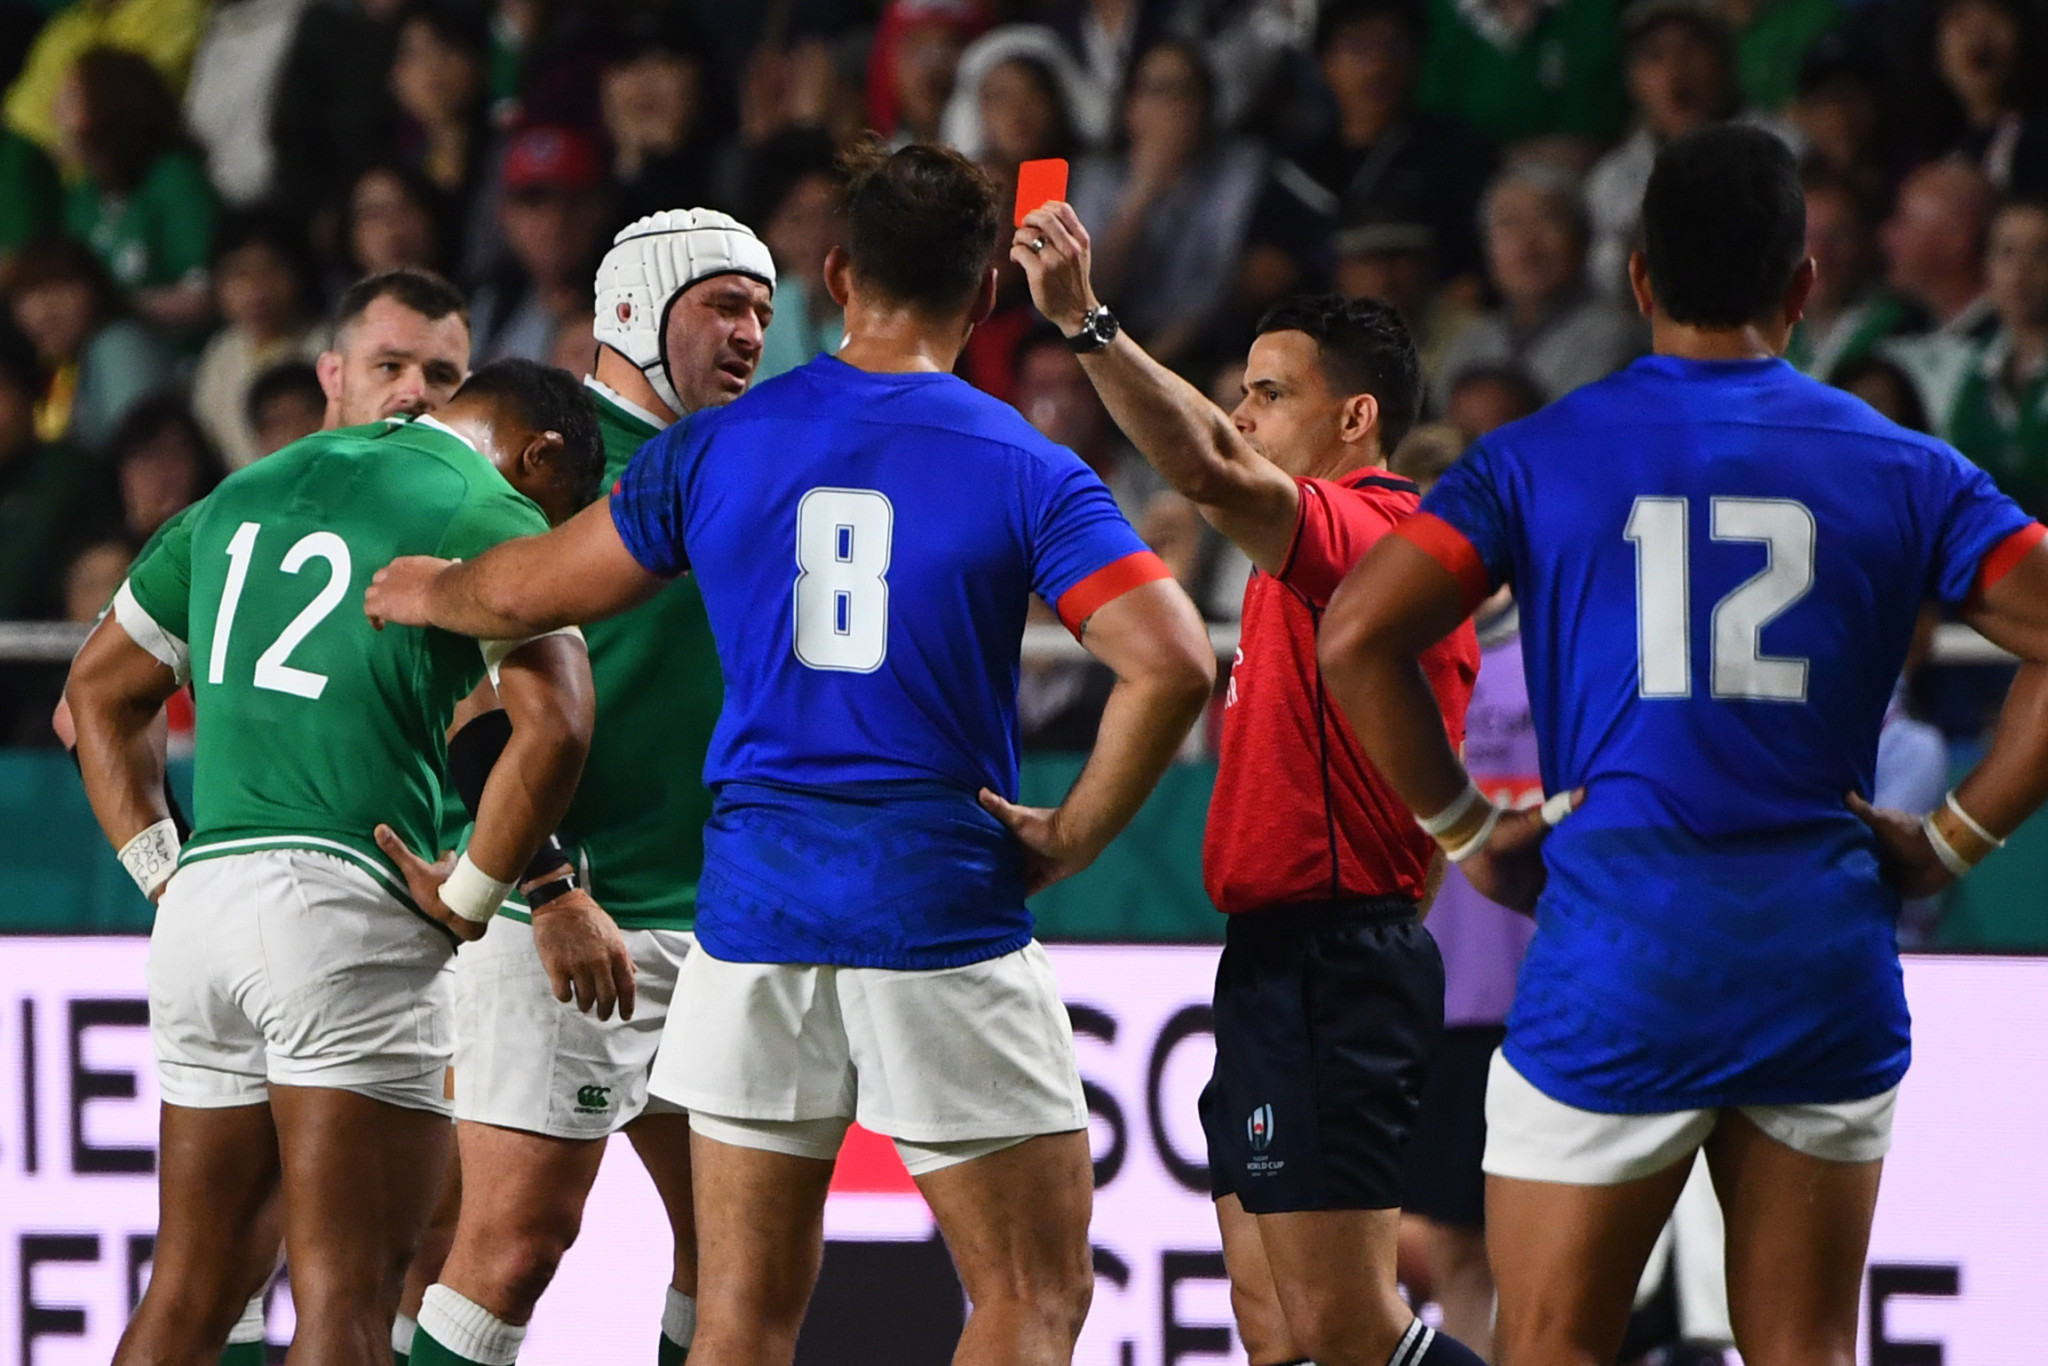 Unfortunately referee Nic Berry felt there were no mitigating factors and sent Aki off ©Getty Images